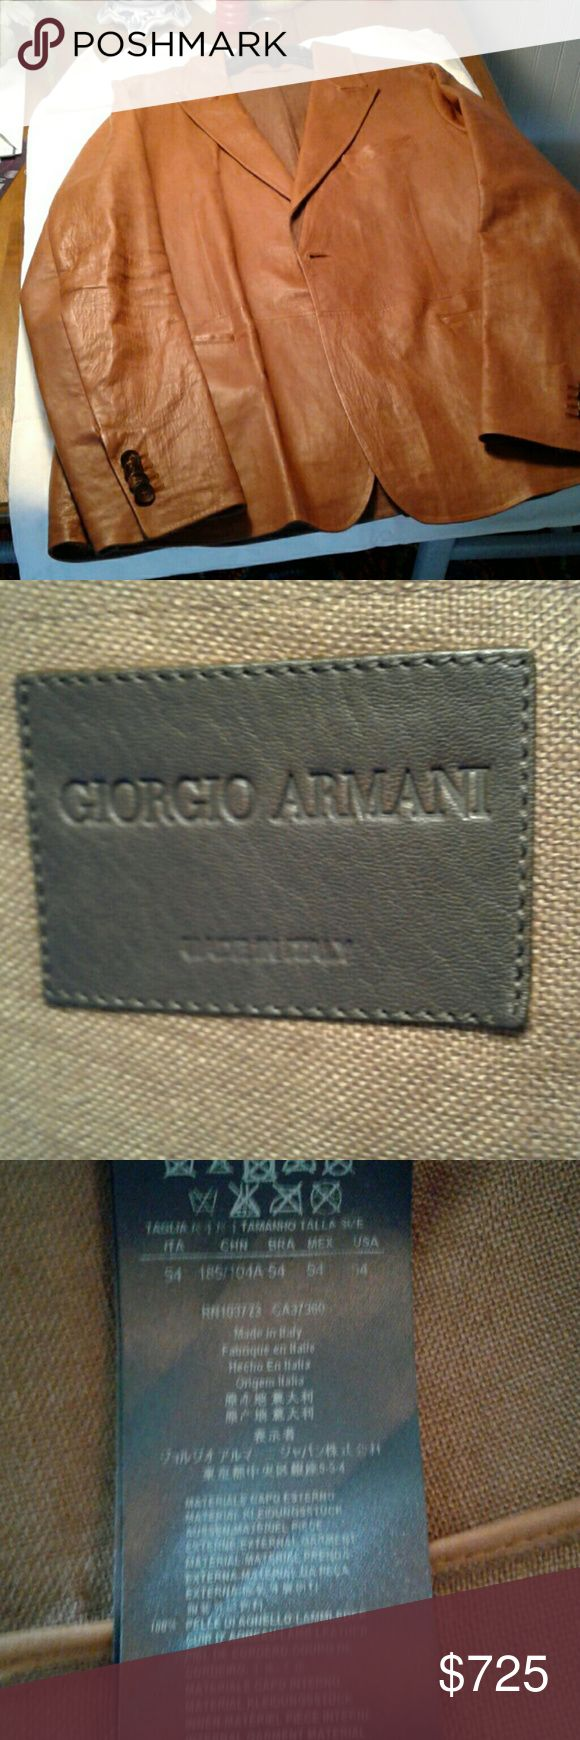 Giorgio Armani Leather Jacket Soft leather,  color called cognac, in excellent condition Giorgio Armani Leather Jacket Jackets & Coats Lightweight & Shirt Jackets